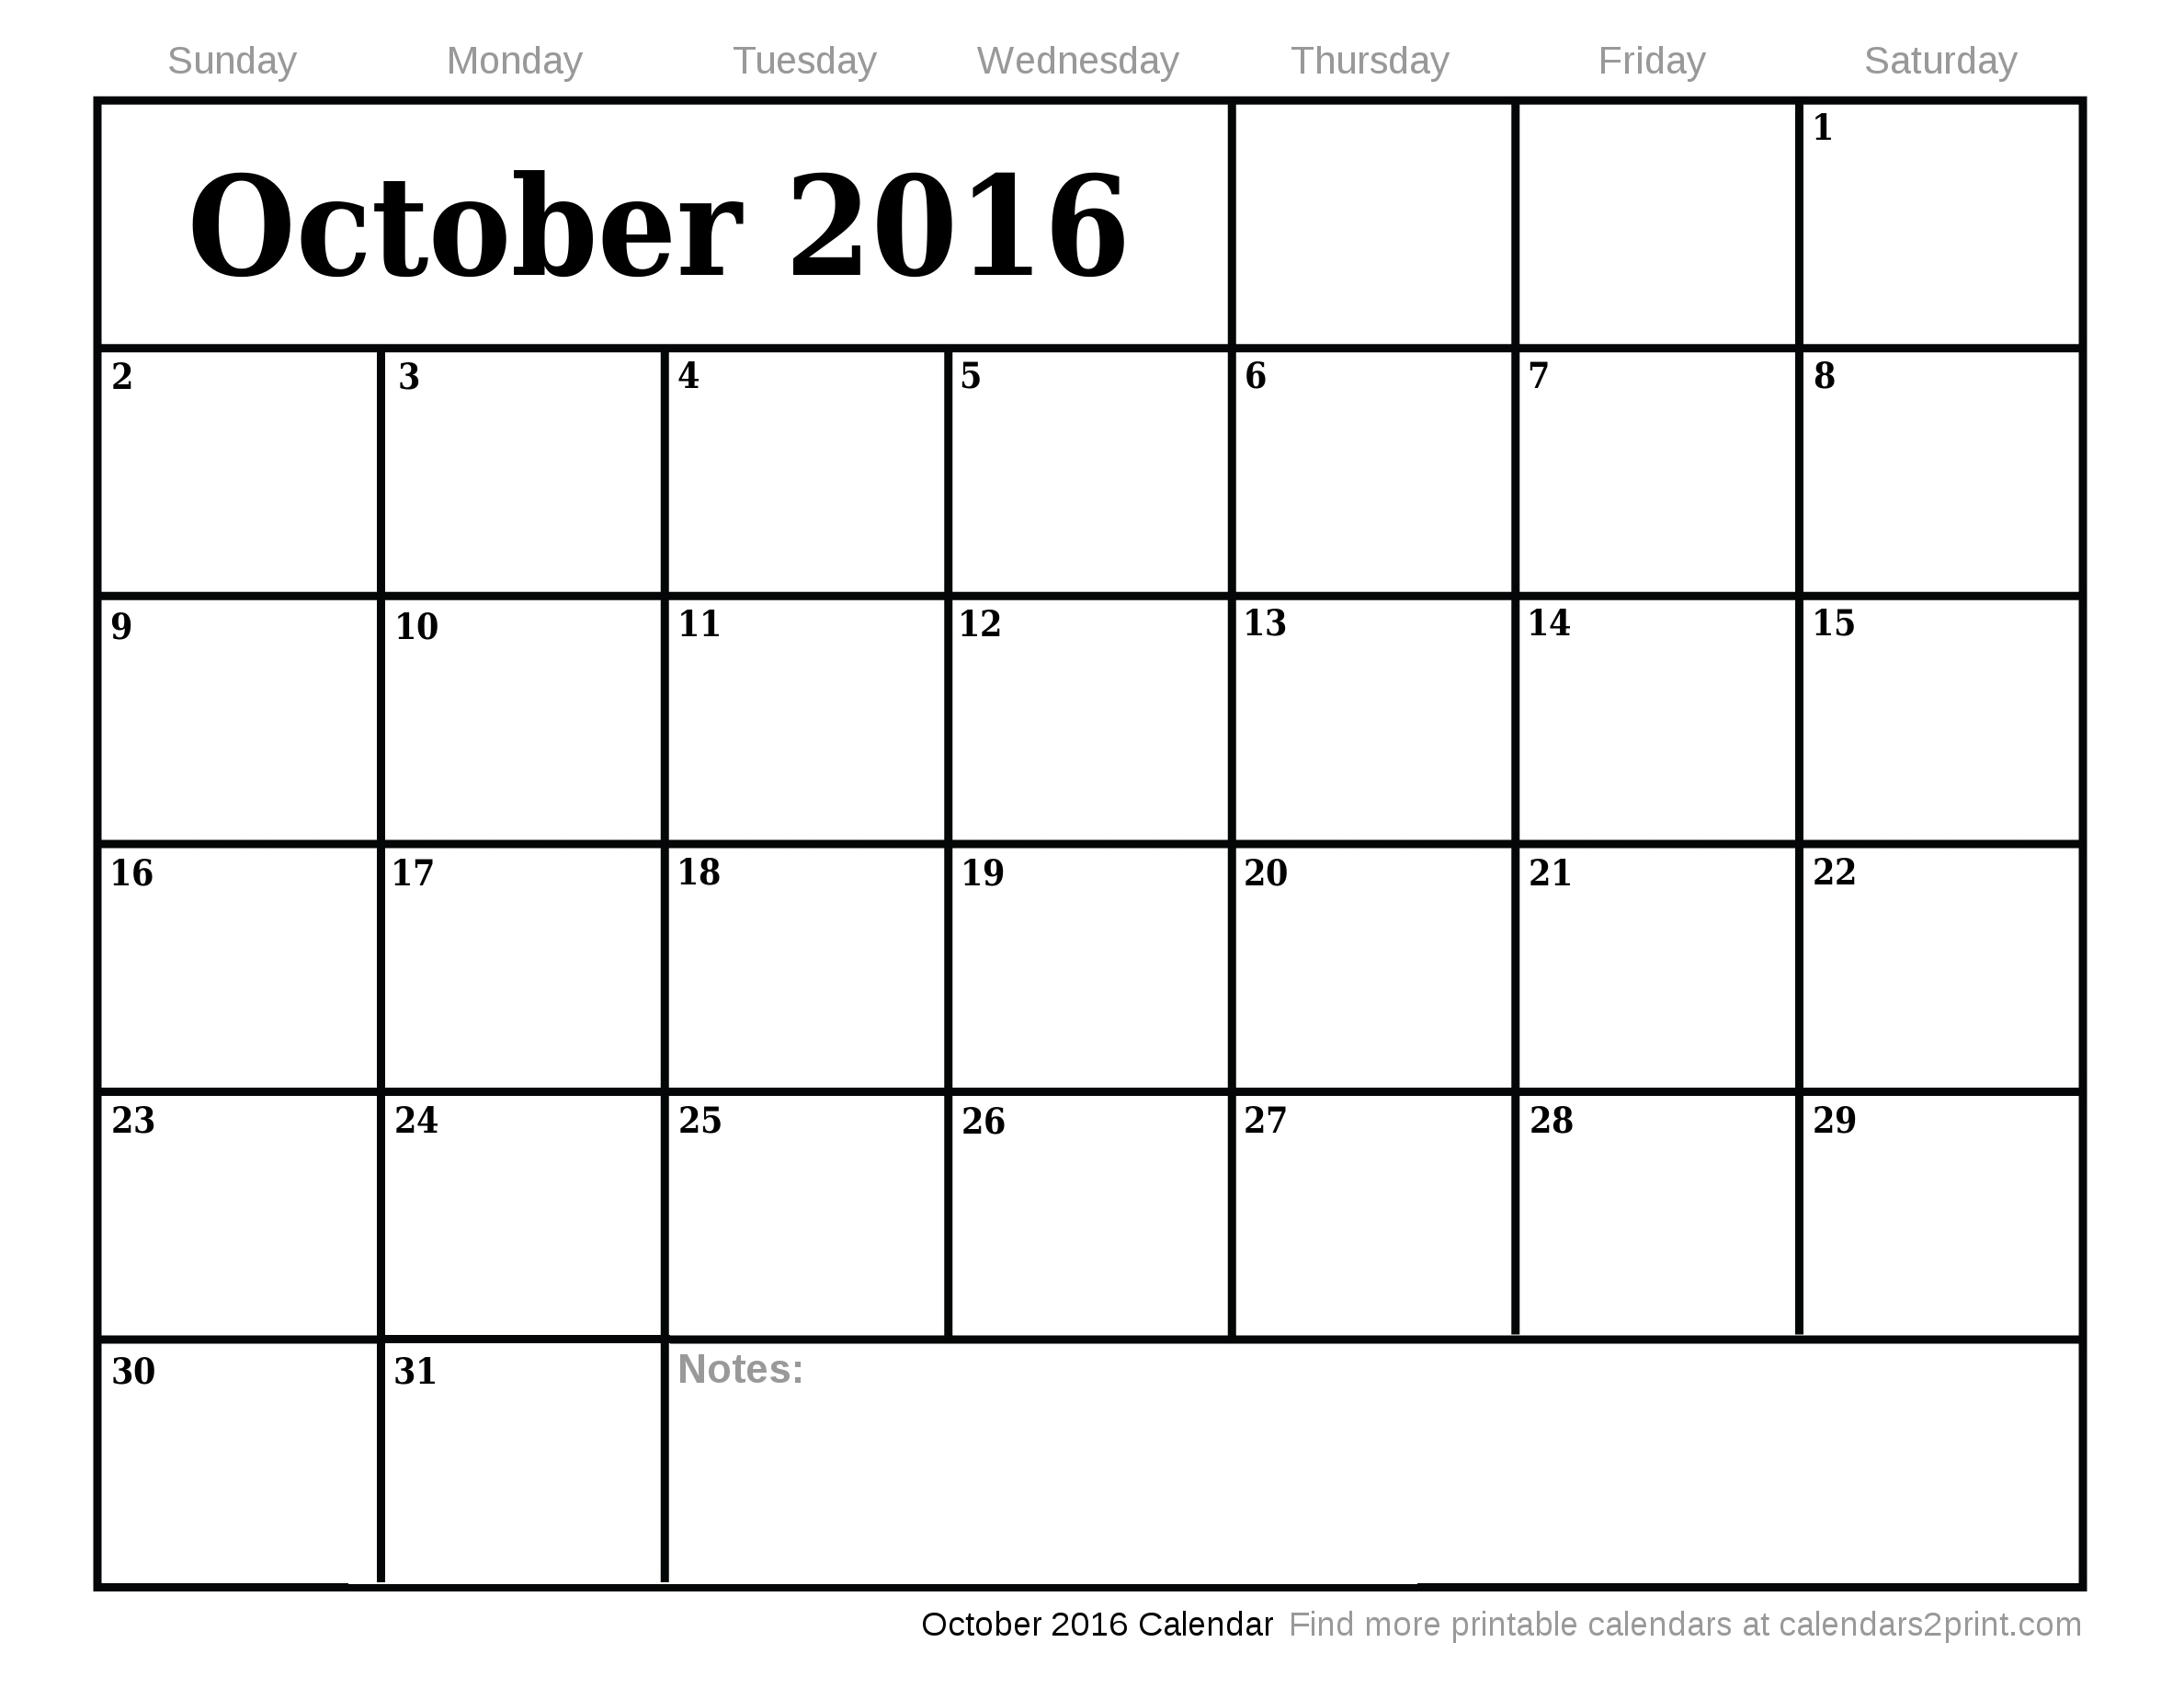 October 2017 Calendar Templates | Caleendar.Com